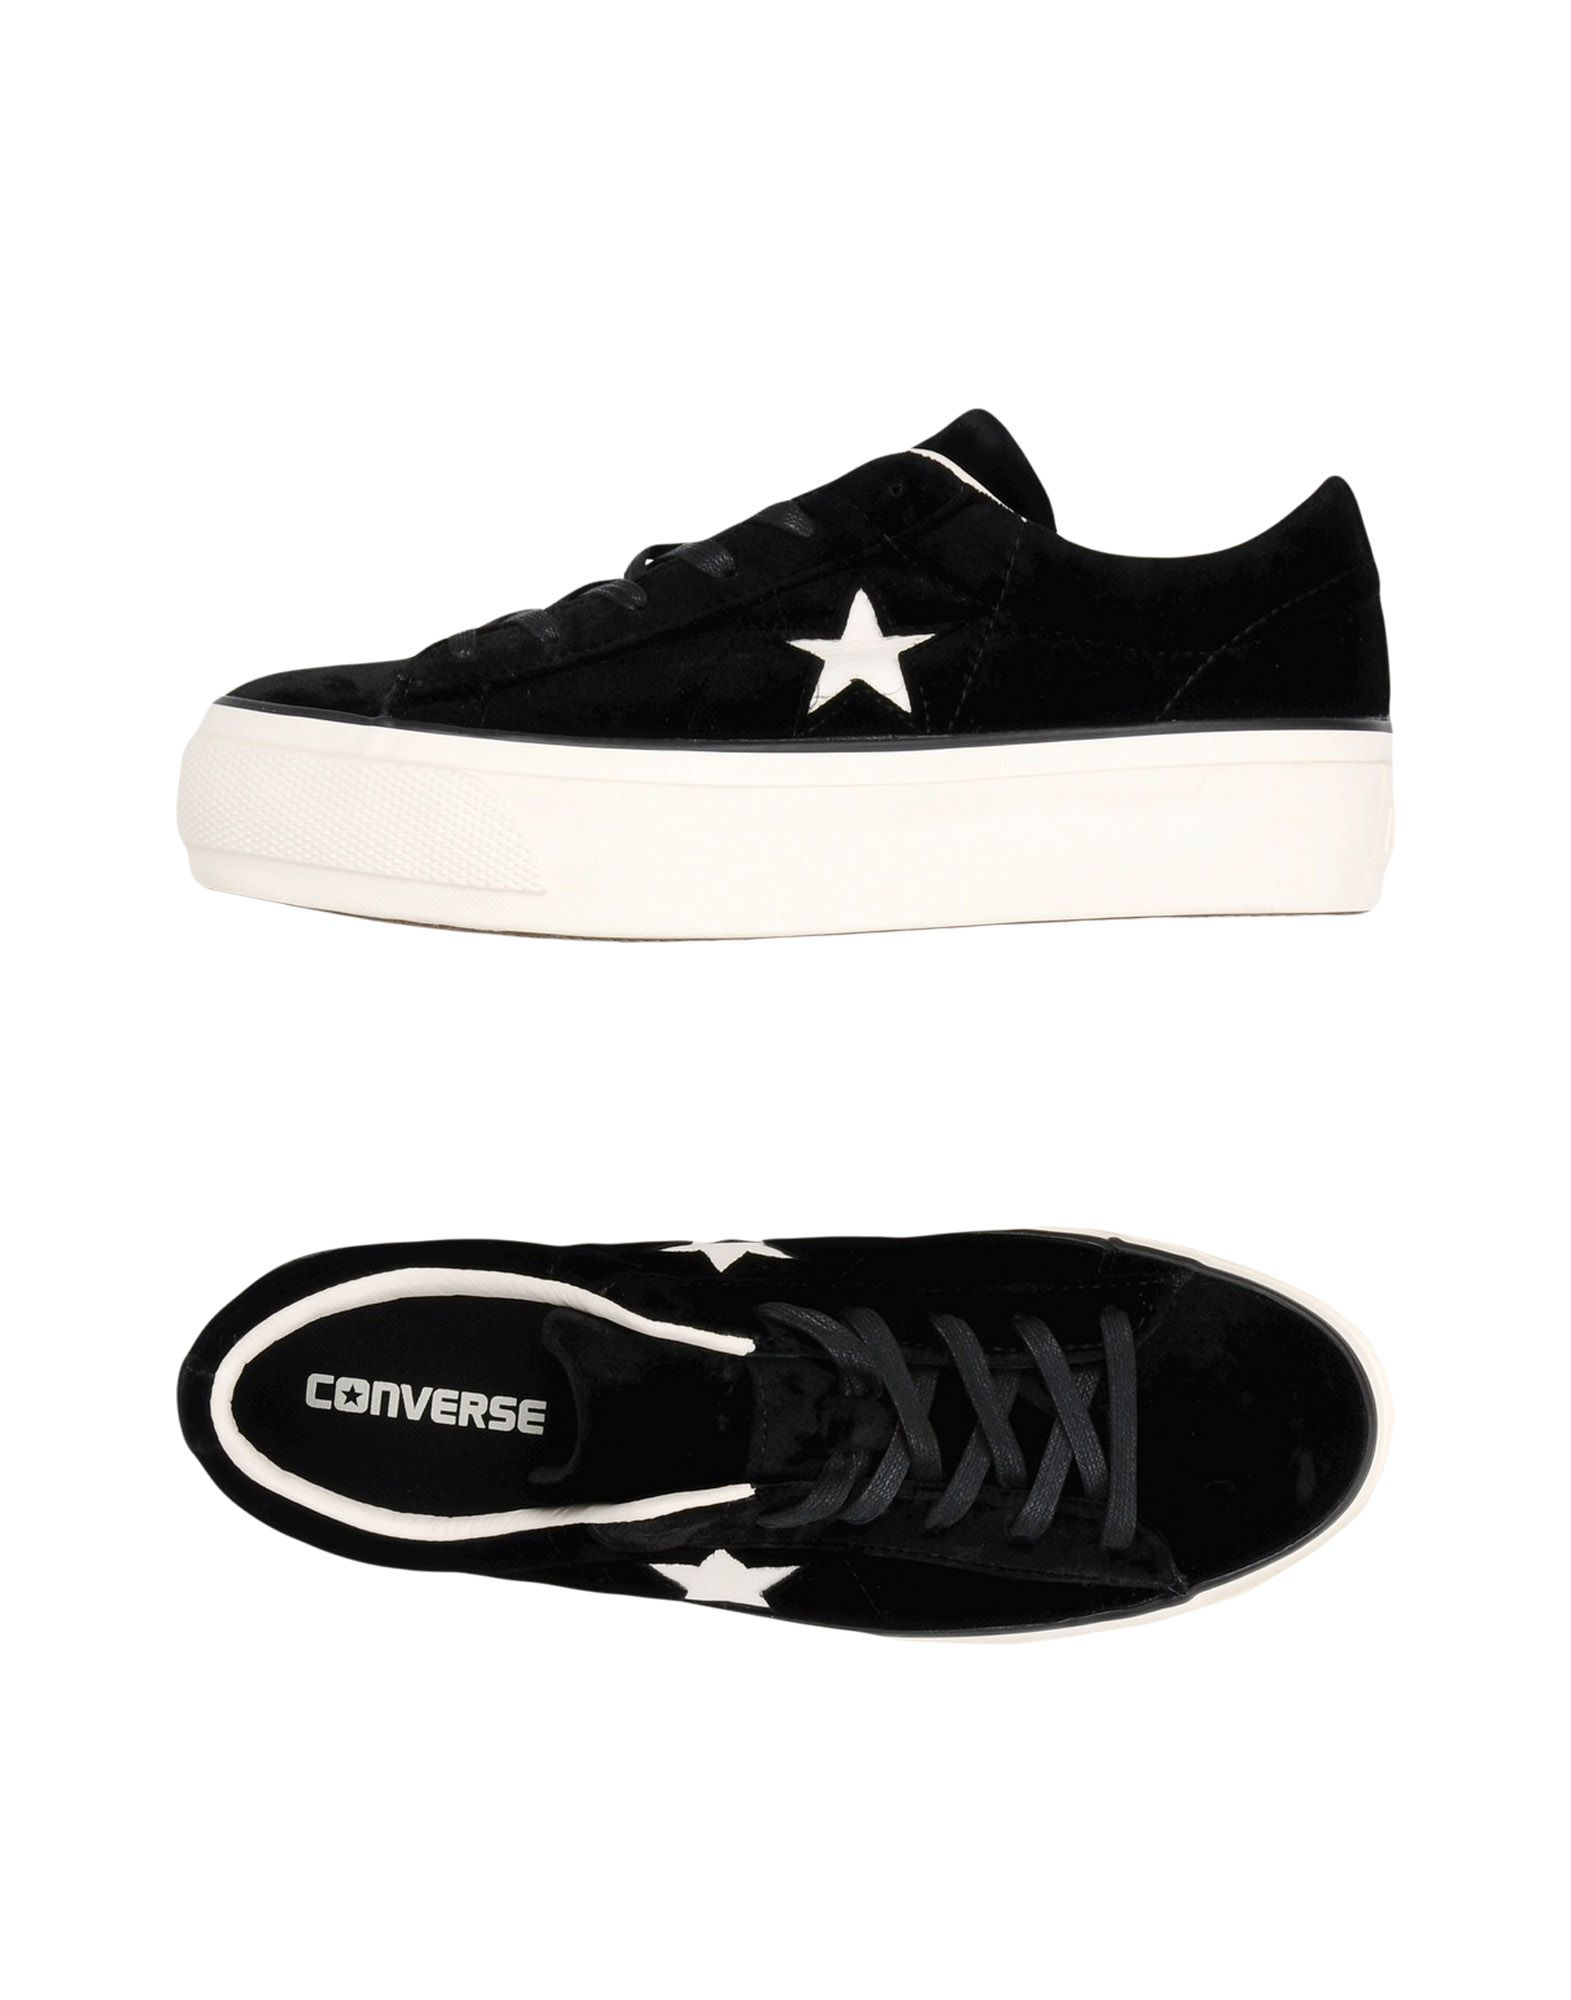 2839756b4e18a Converse All Star Donna Collezione Primavera-Estate e Autunno ...